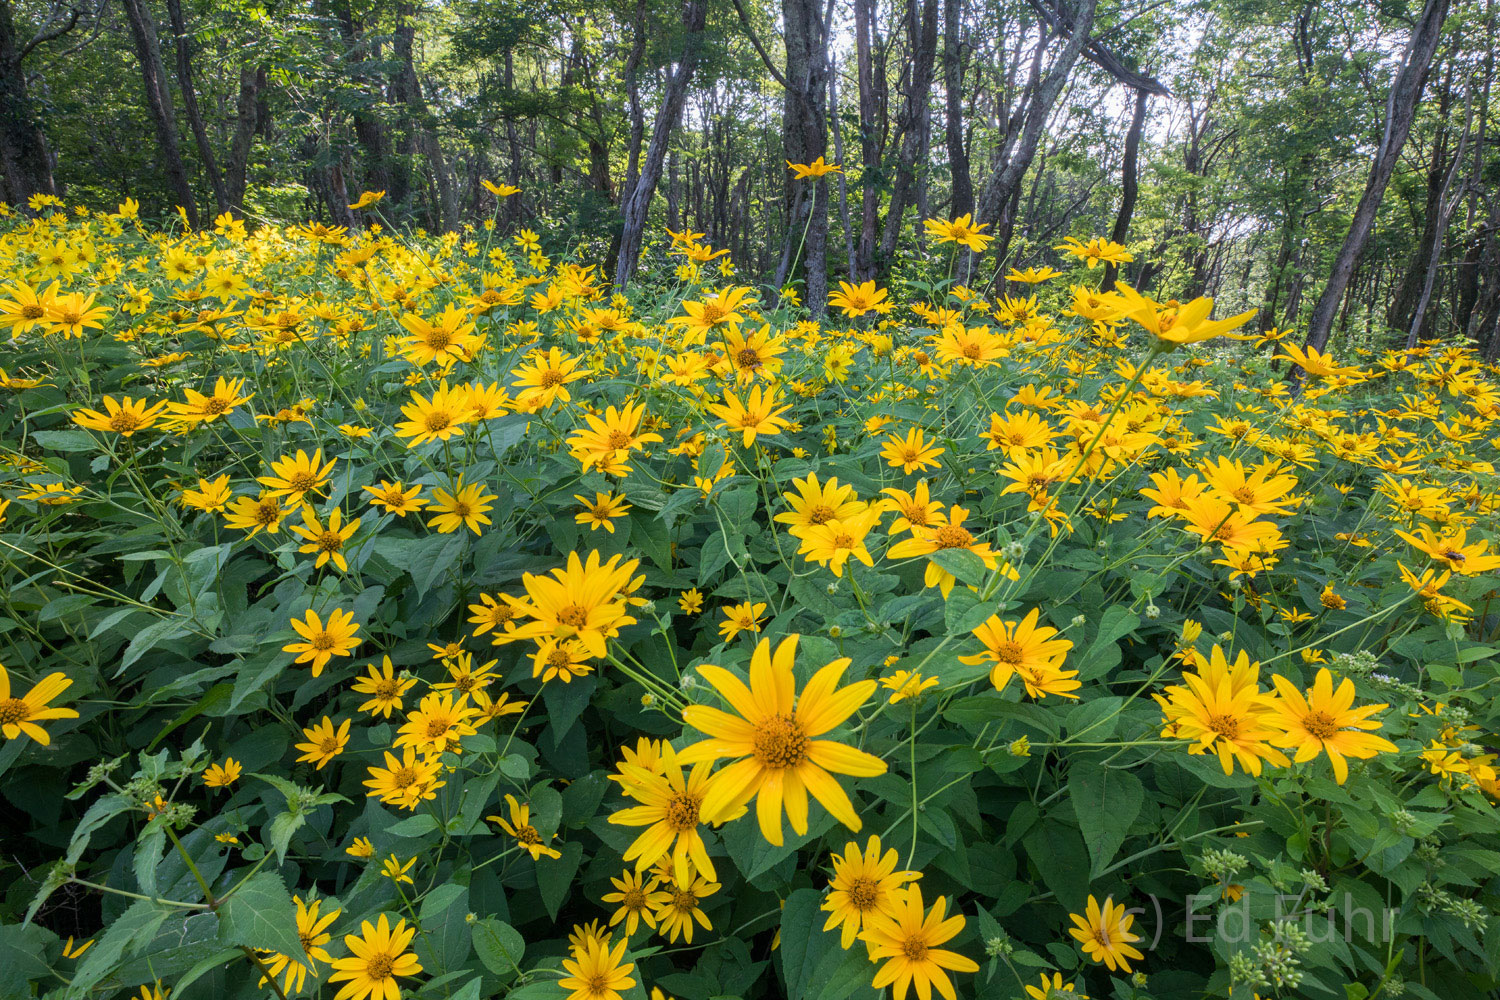 When conditions are right, Shenandoah can boast some of the best summer wildflower displays on the east coast.